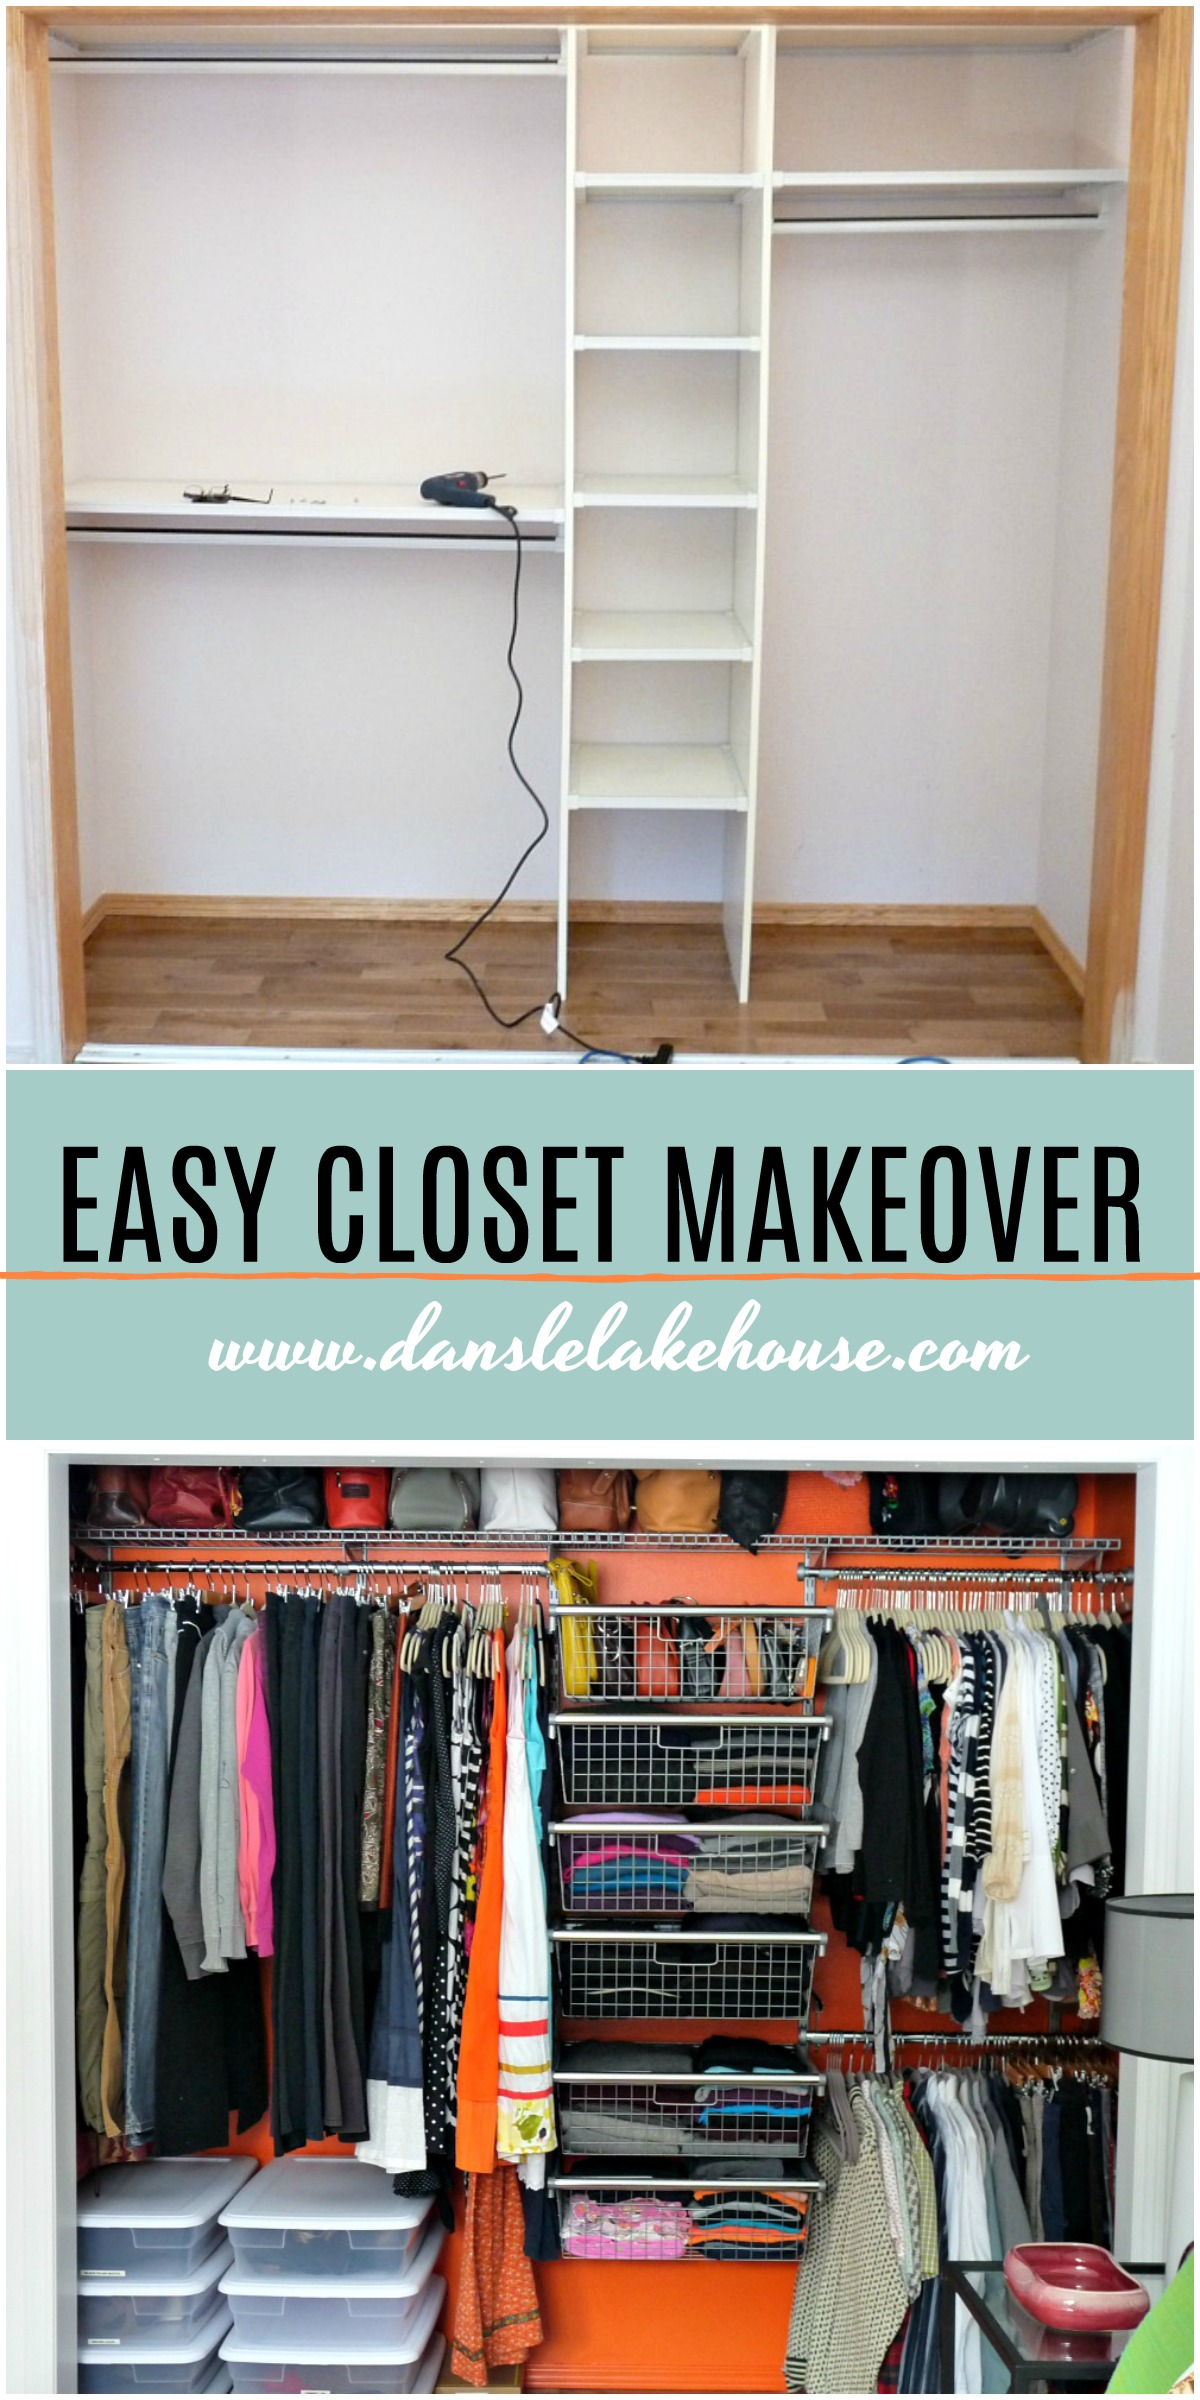 Rubbermaid Configurations Closet Organizer Review | Easy Closet Makeover